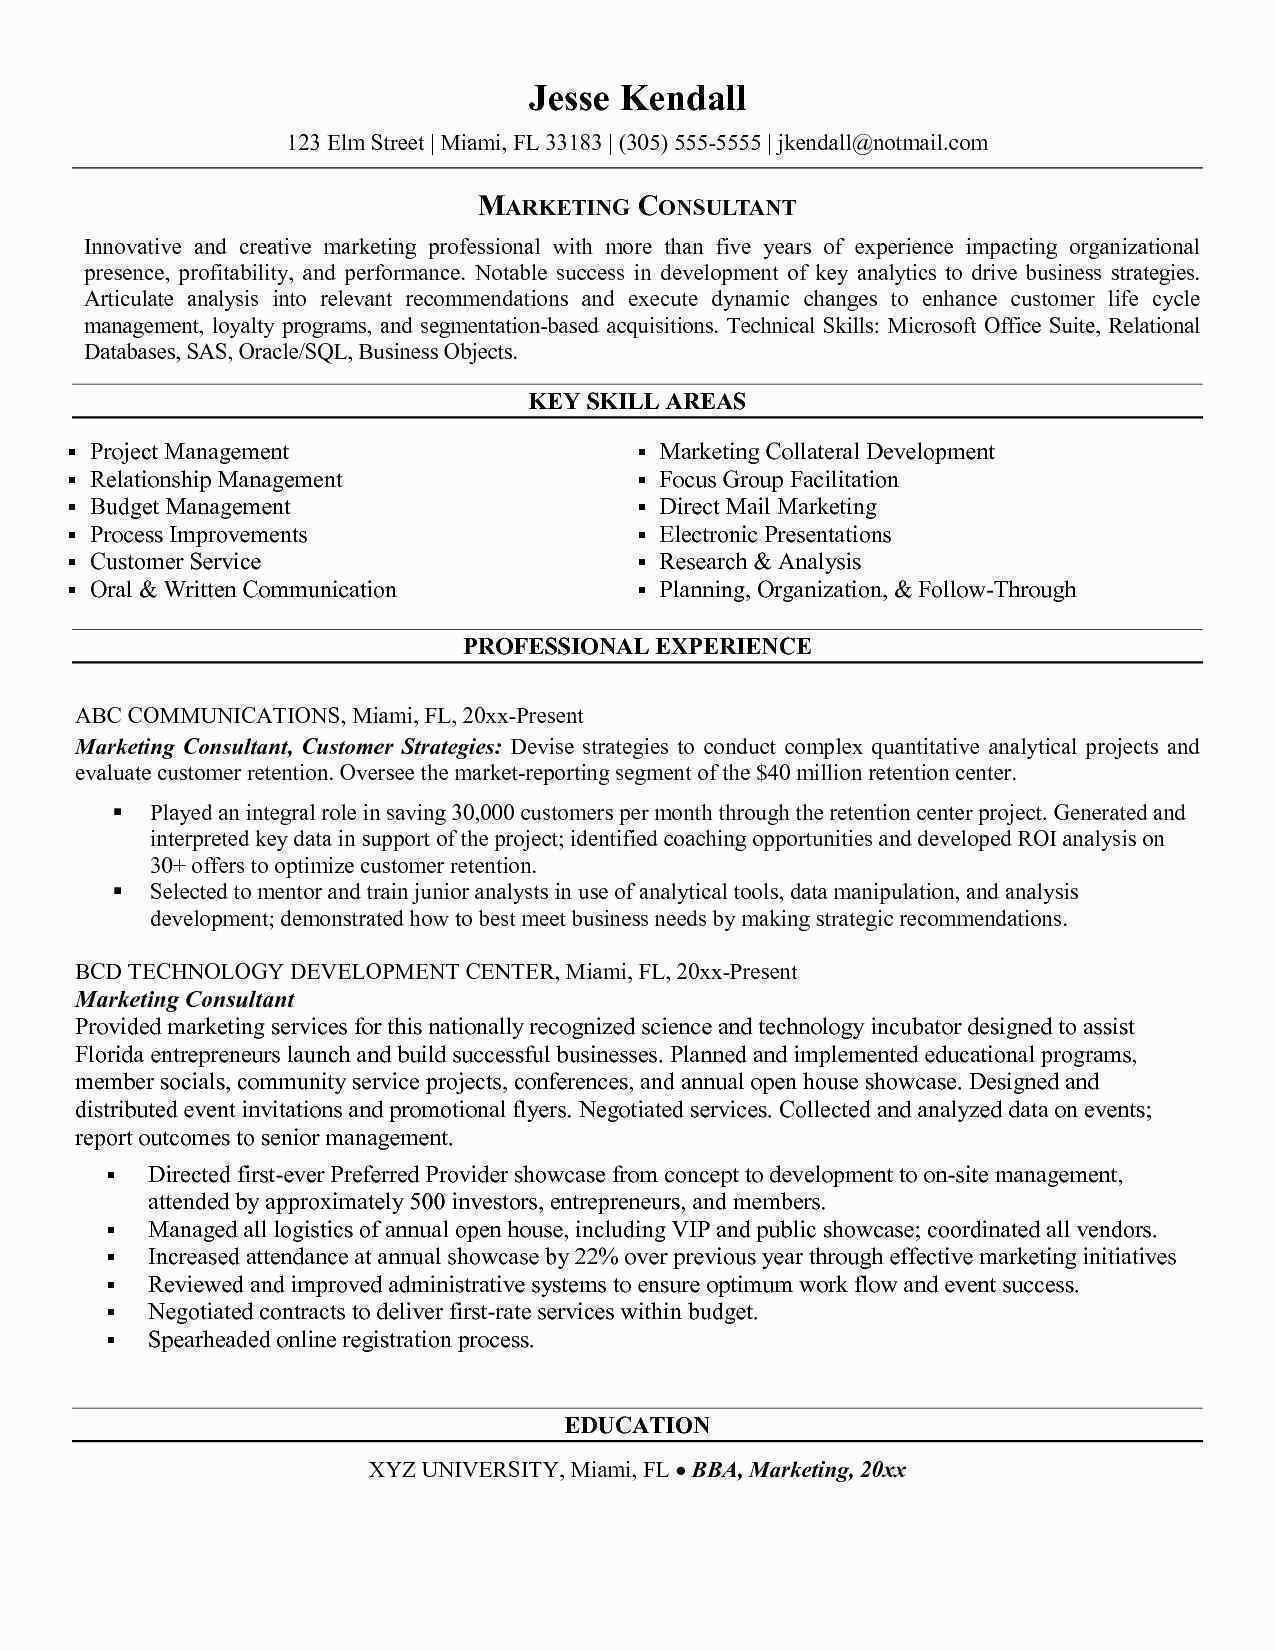 sas 114 letter template example-Sas Consultant Cover Letter 40 Inspirational Network Engineer Sas Consultant Cover Letter 16-q